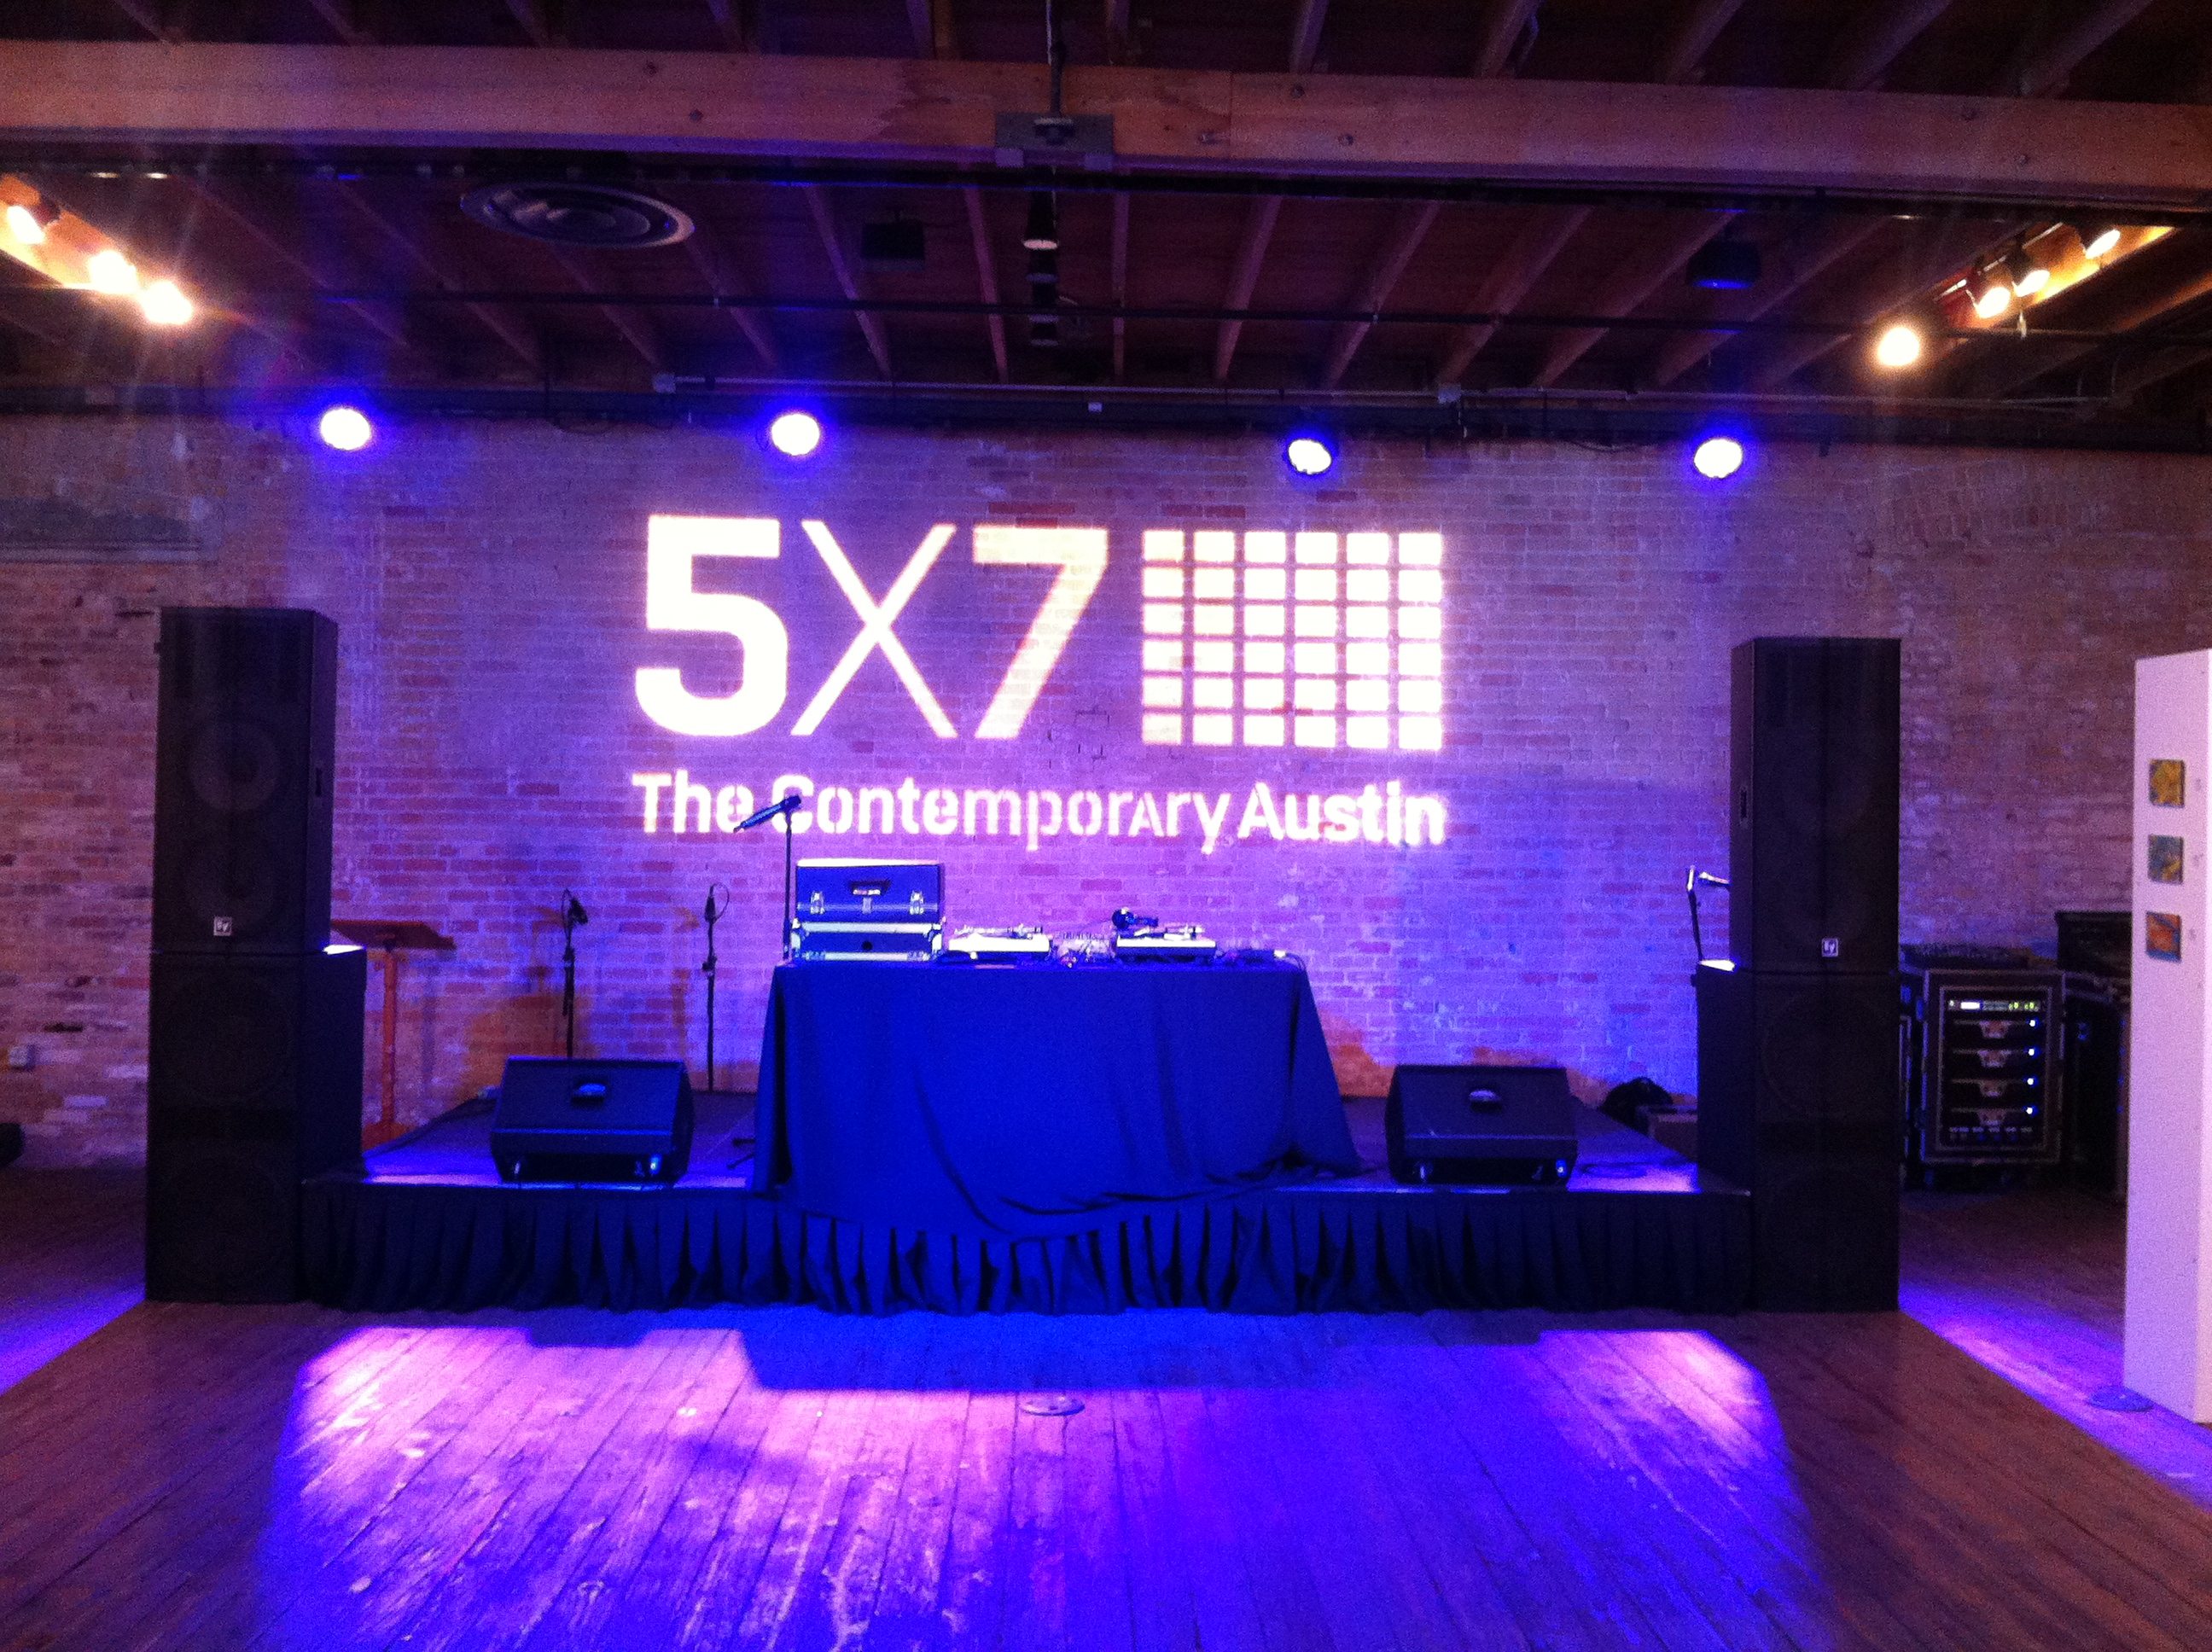 From the boardroom to the ballroom to the concert hall it is our goal to meet our clientu0027s event needs and demands. Our professional services and ... & Event Production Services u2013 StageTech Inc azcodes.com